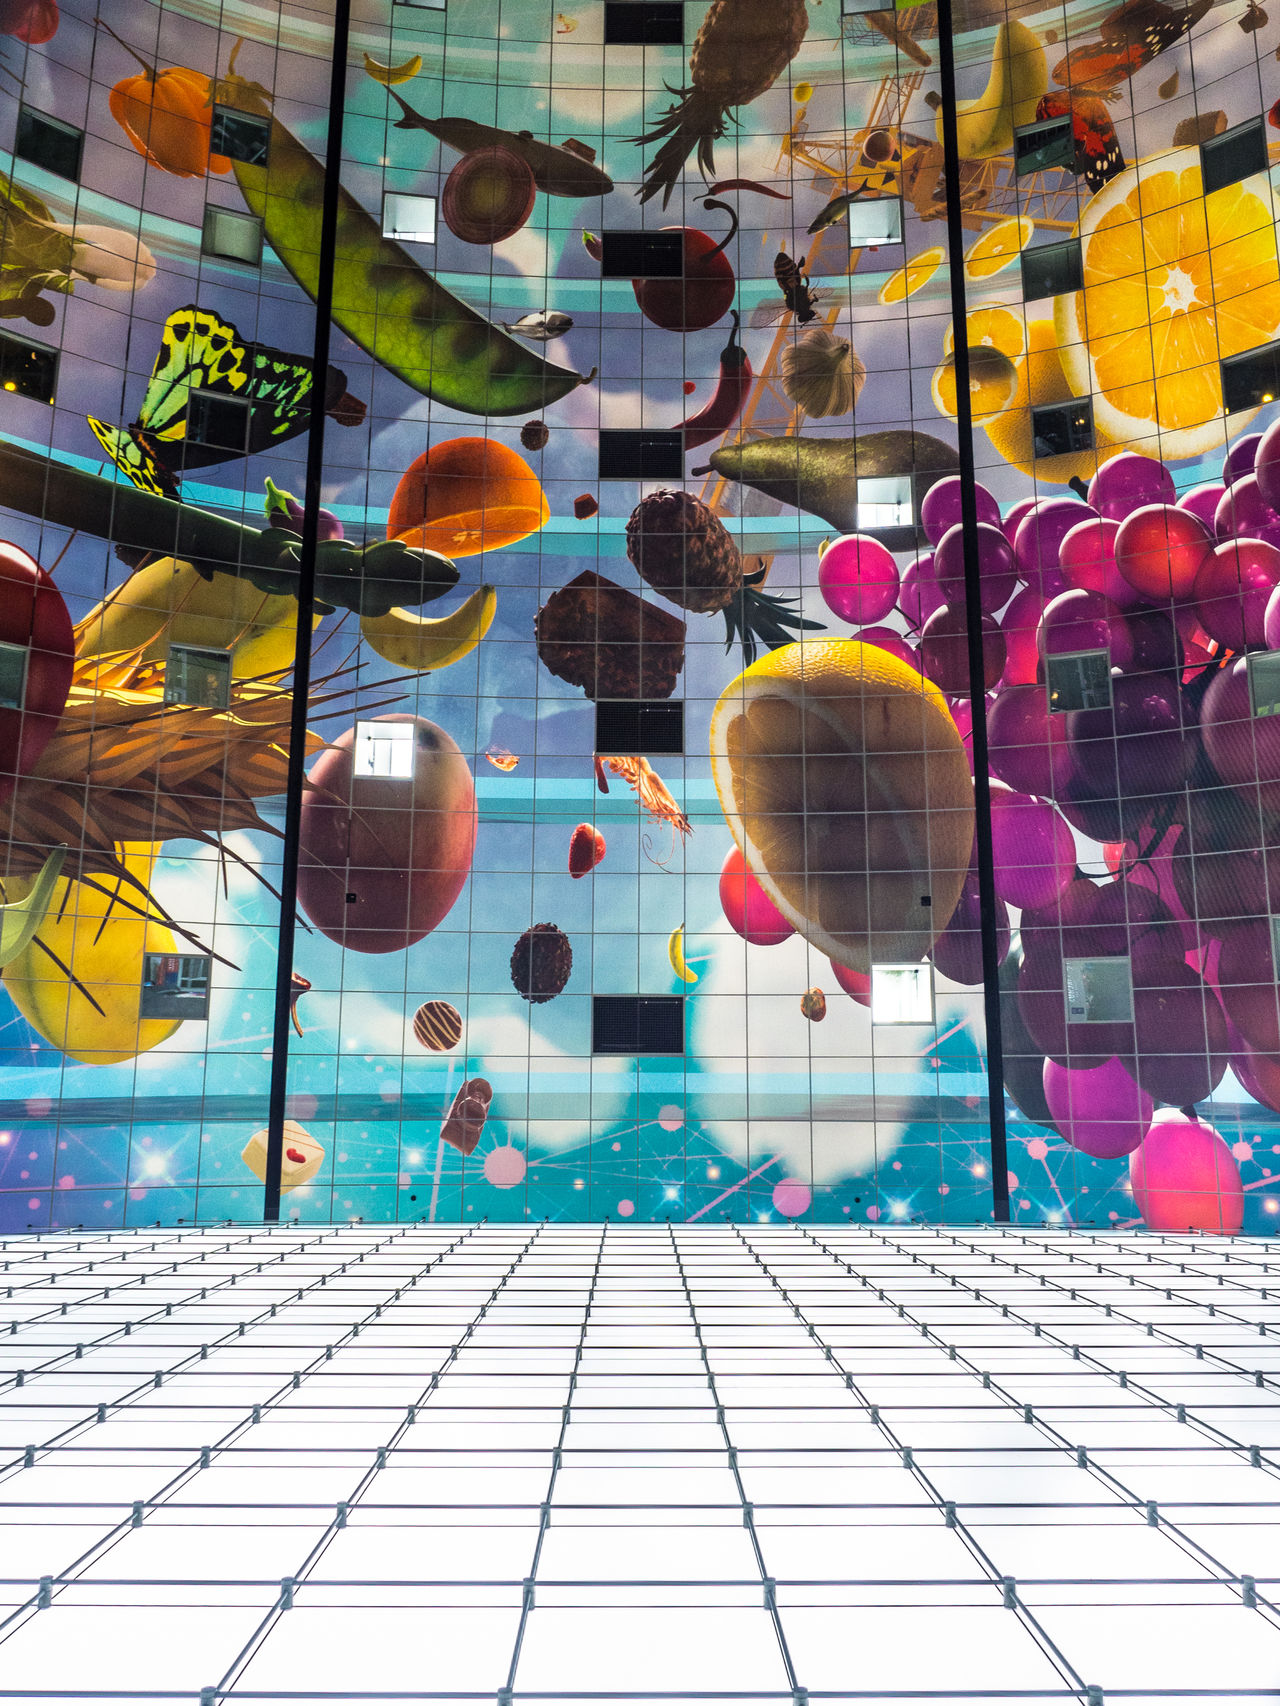 Interior of Rotterdam's famous Market hall. Architecture Beautiful Building Ceiling Colorful Commerce Contemporary Day Food Fruit Full Frame Future Holland Living Looking Up Low Angle View Market Markthal Multi Colored Netherlands No People Rotterdam Squares The Architect - 2017 EyeEm Awards Vertical